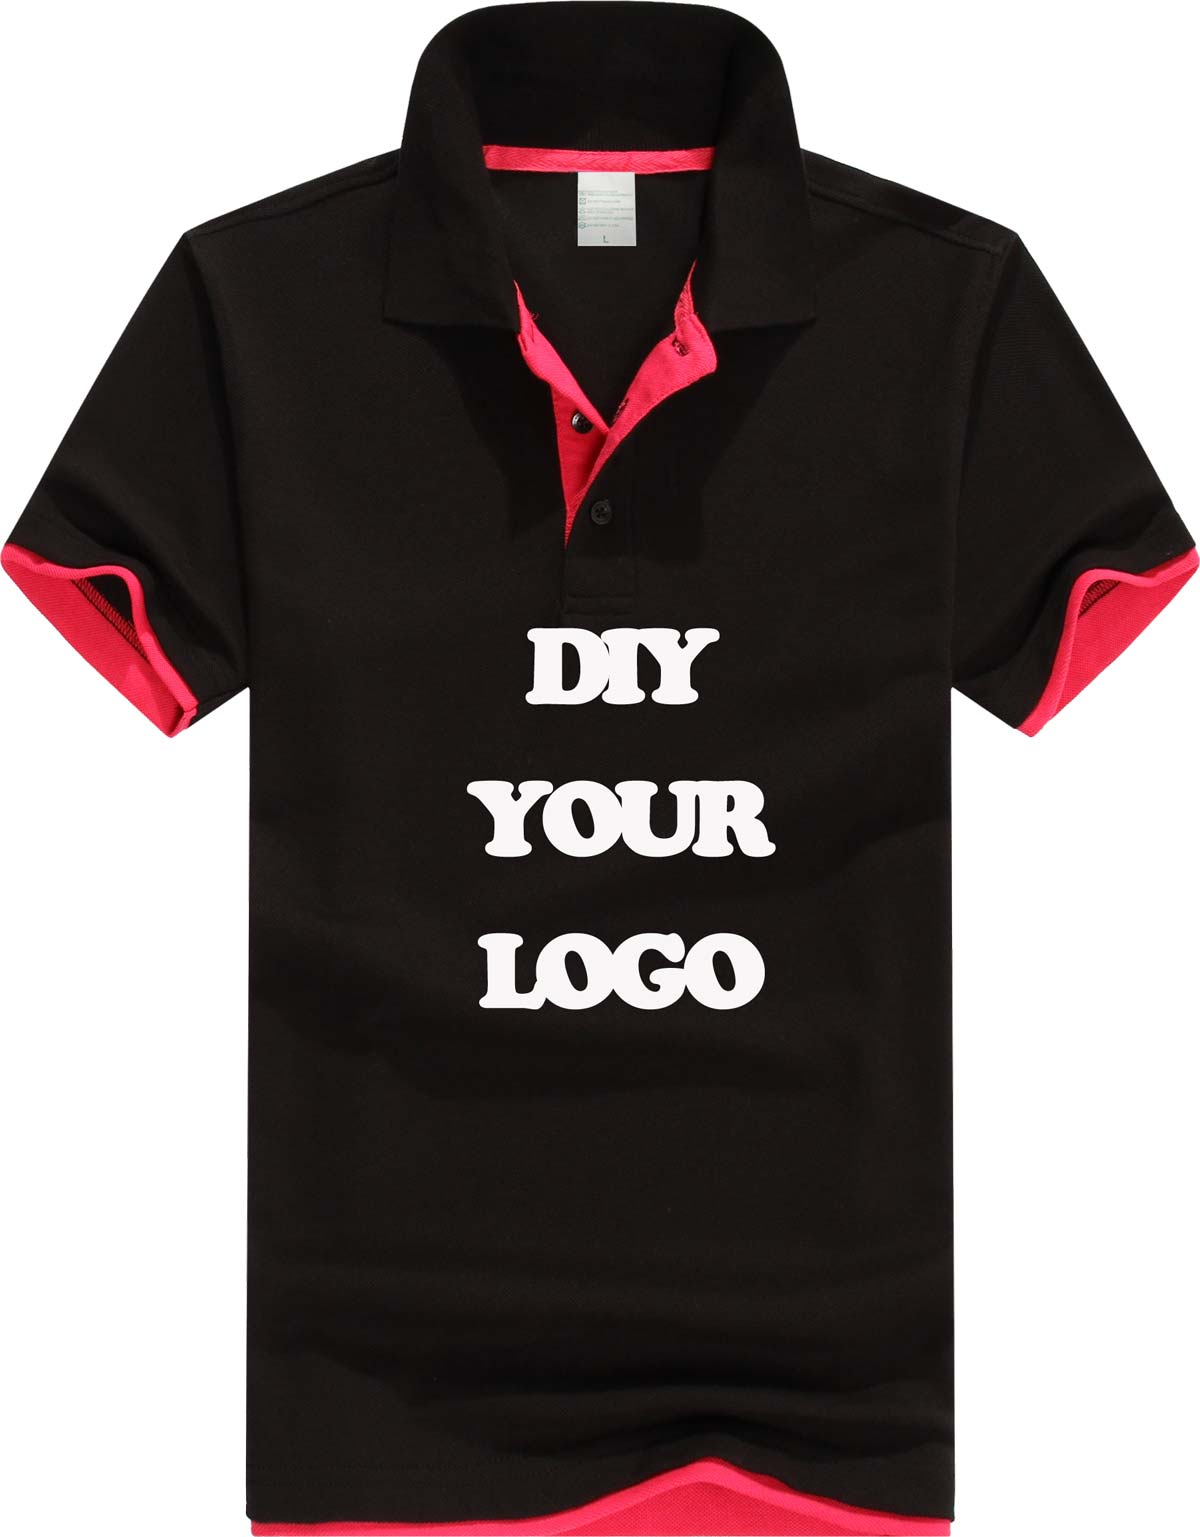 180g pique cotton men women polo shirt custom logo print